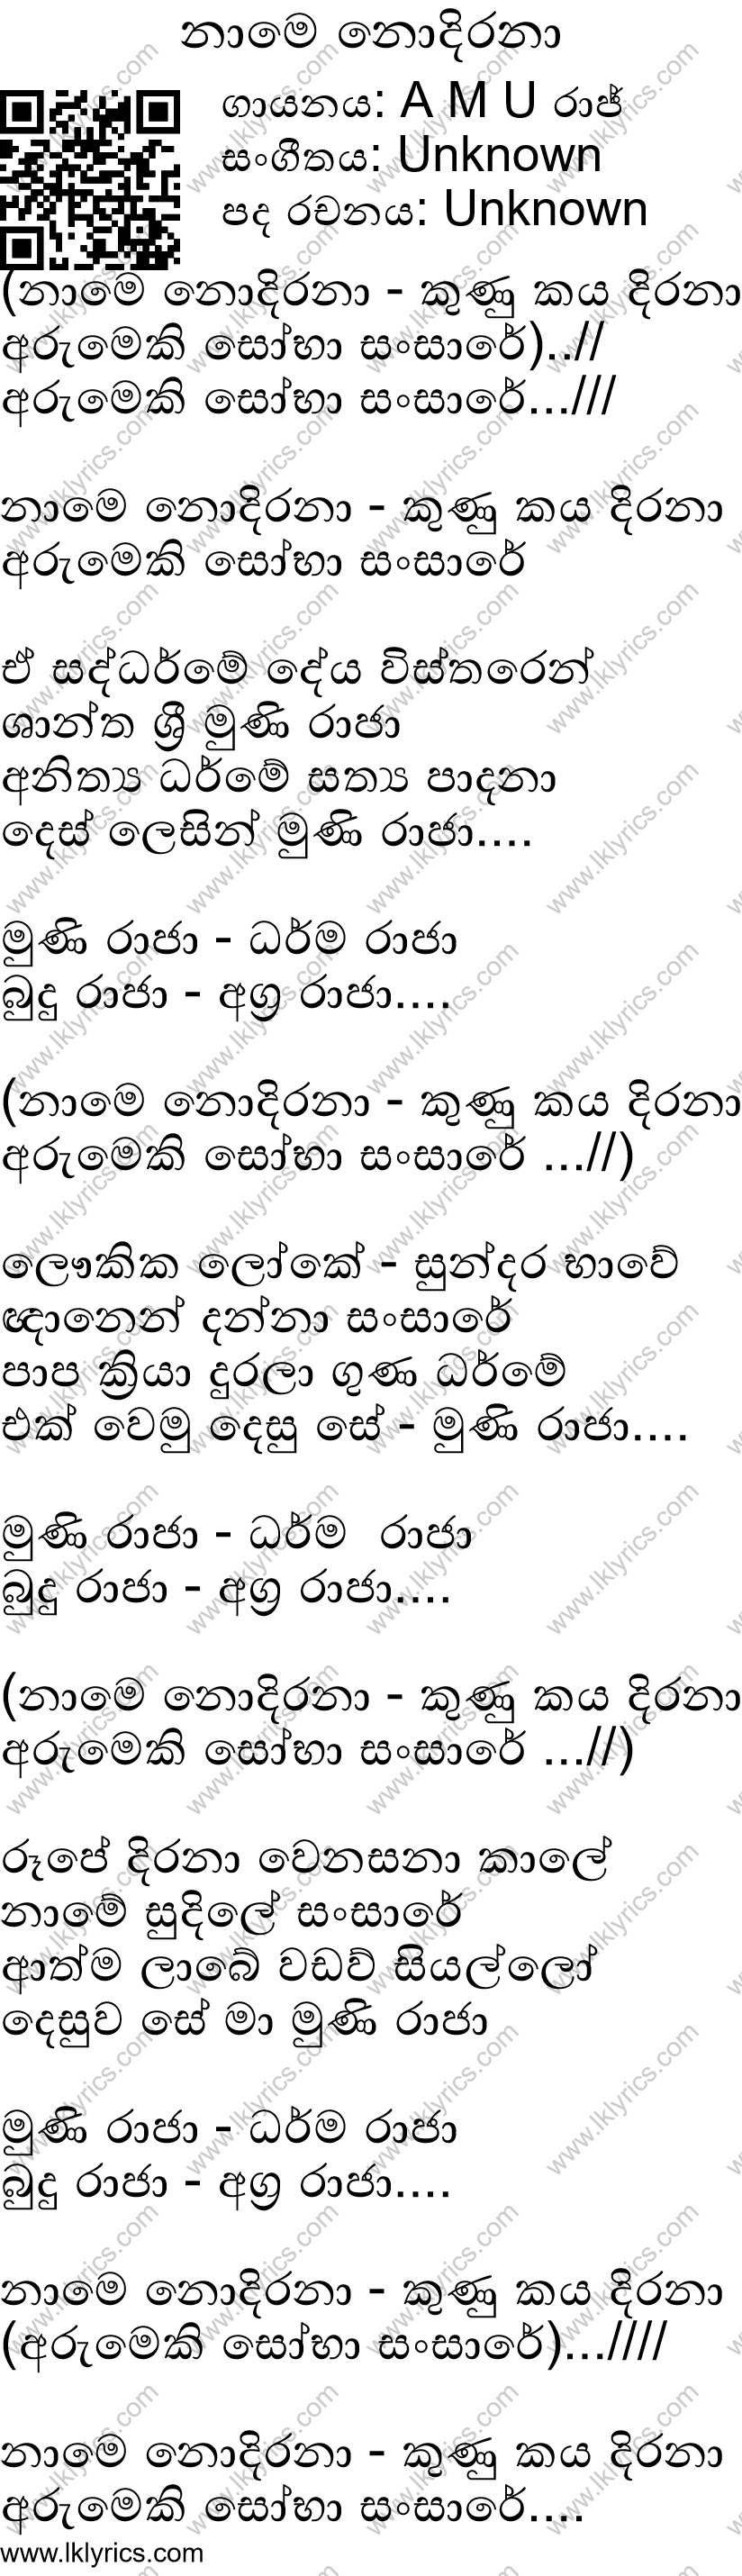 Name Nodirana Lyrics - LK Lyrics